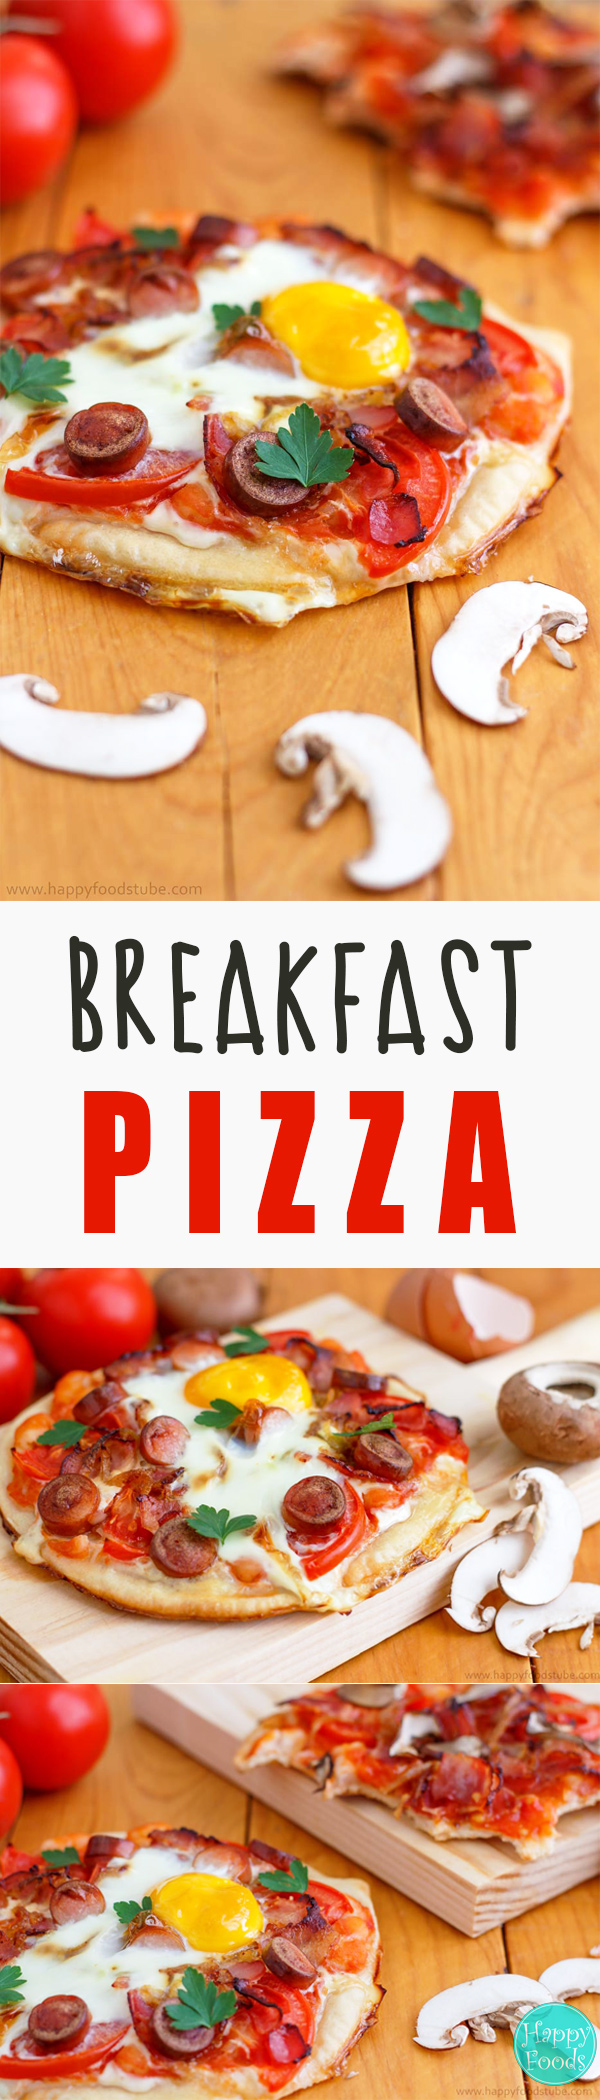 Breakfast Pizza Recipe - Breakfast pizza with bacon, mushrooms, beans and eggs is the way to start your day! All your favorite things on a pizza crust! It's hard to resist this deliciousness! ♡ | happyfoodstube.com